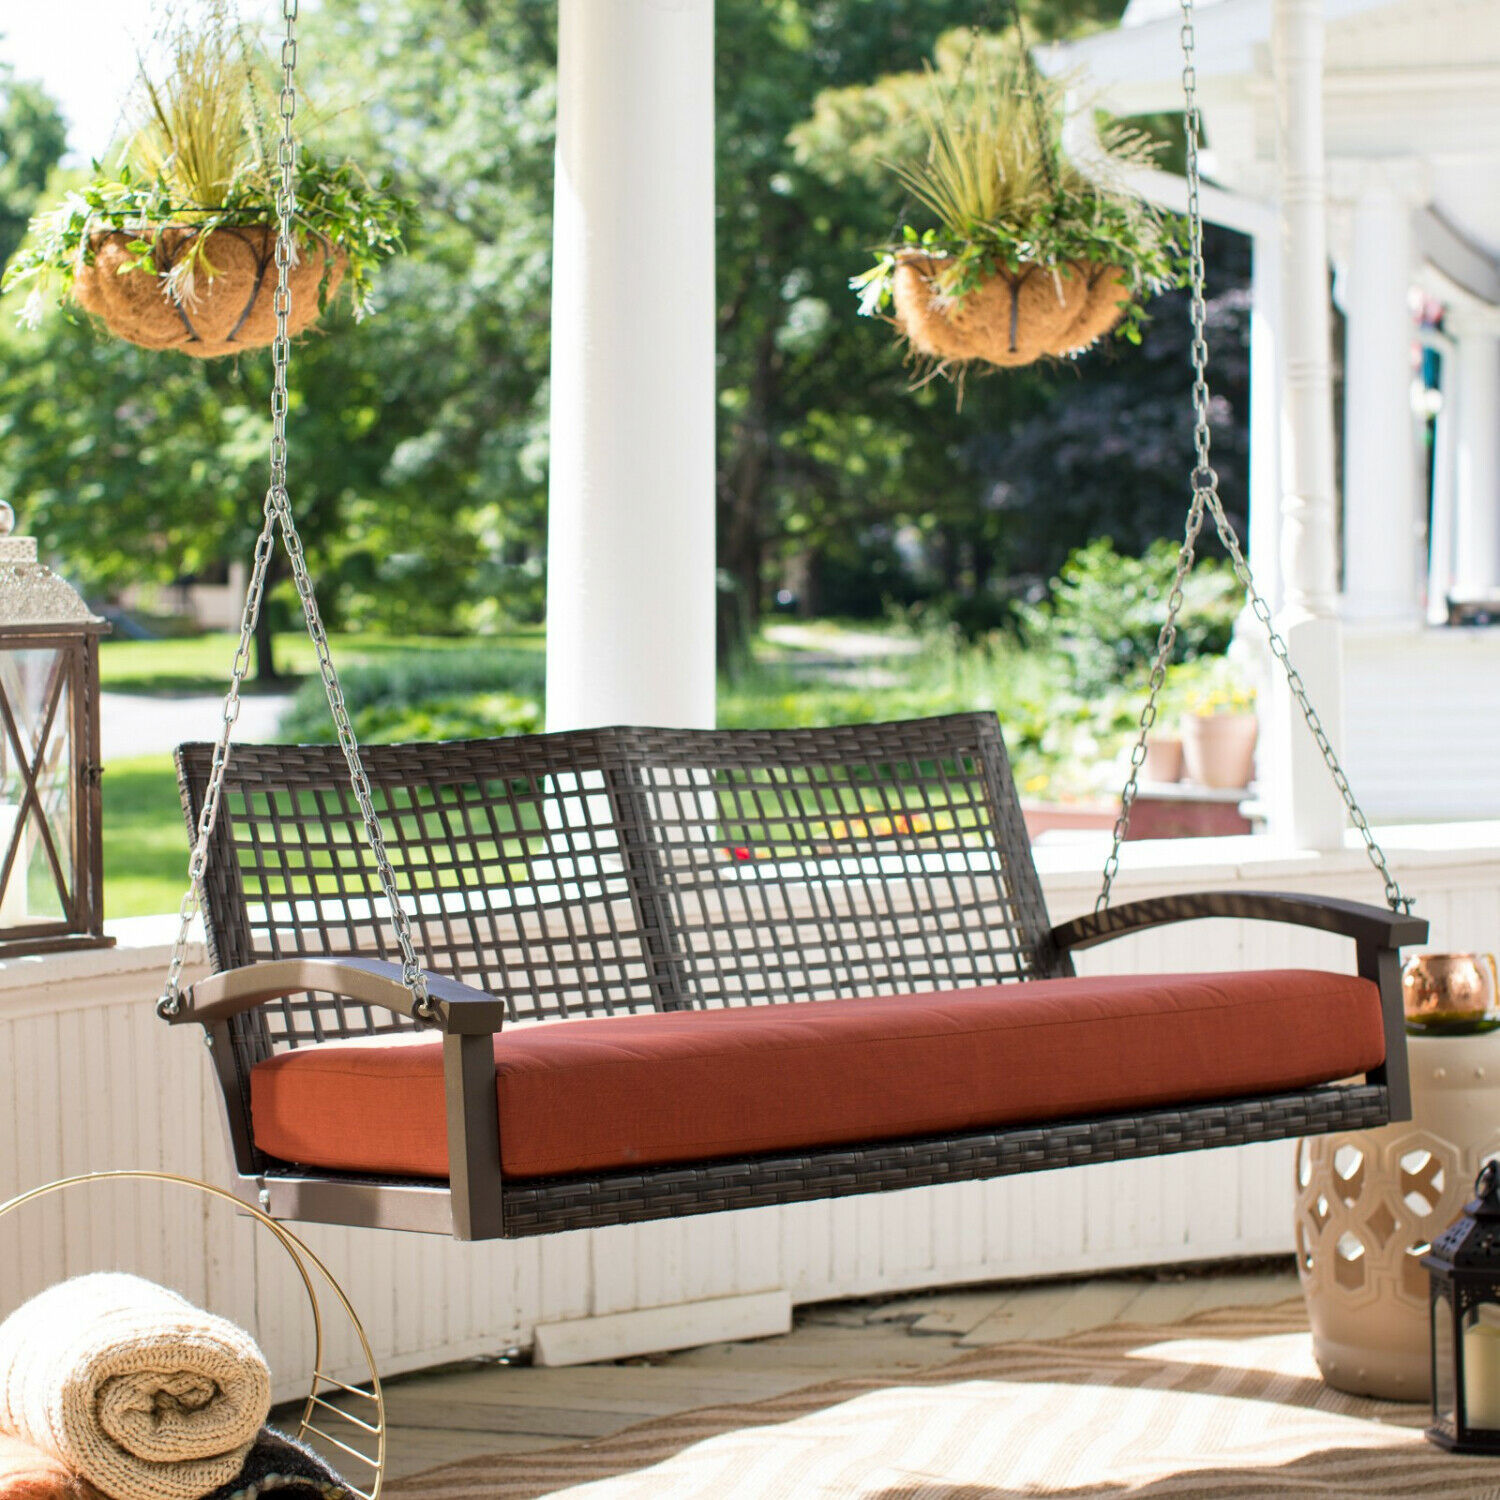 Porch Swing Patio Wicker Hanging Seat Chair Loveseat Outdoor Cushion Home Resin image 8